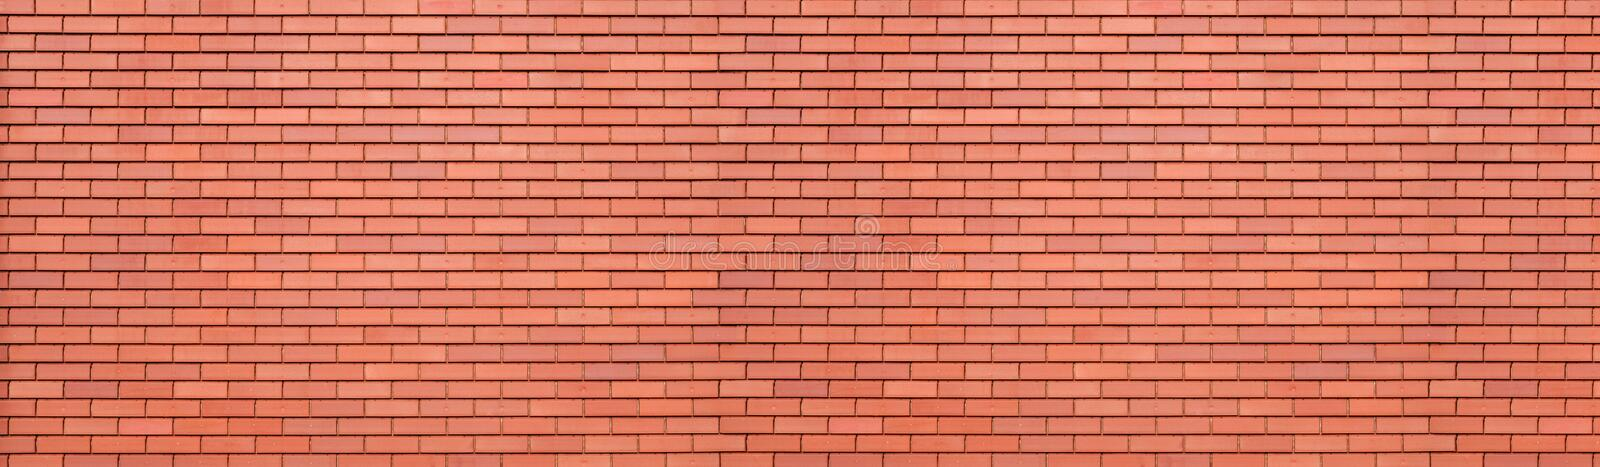 Abstract red brick wall texture background. Horizontal panoramic view of masonry brick wall. royalty free stock photo